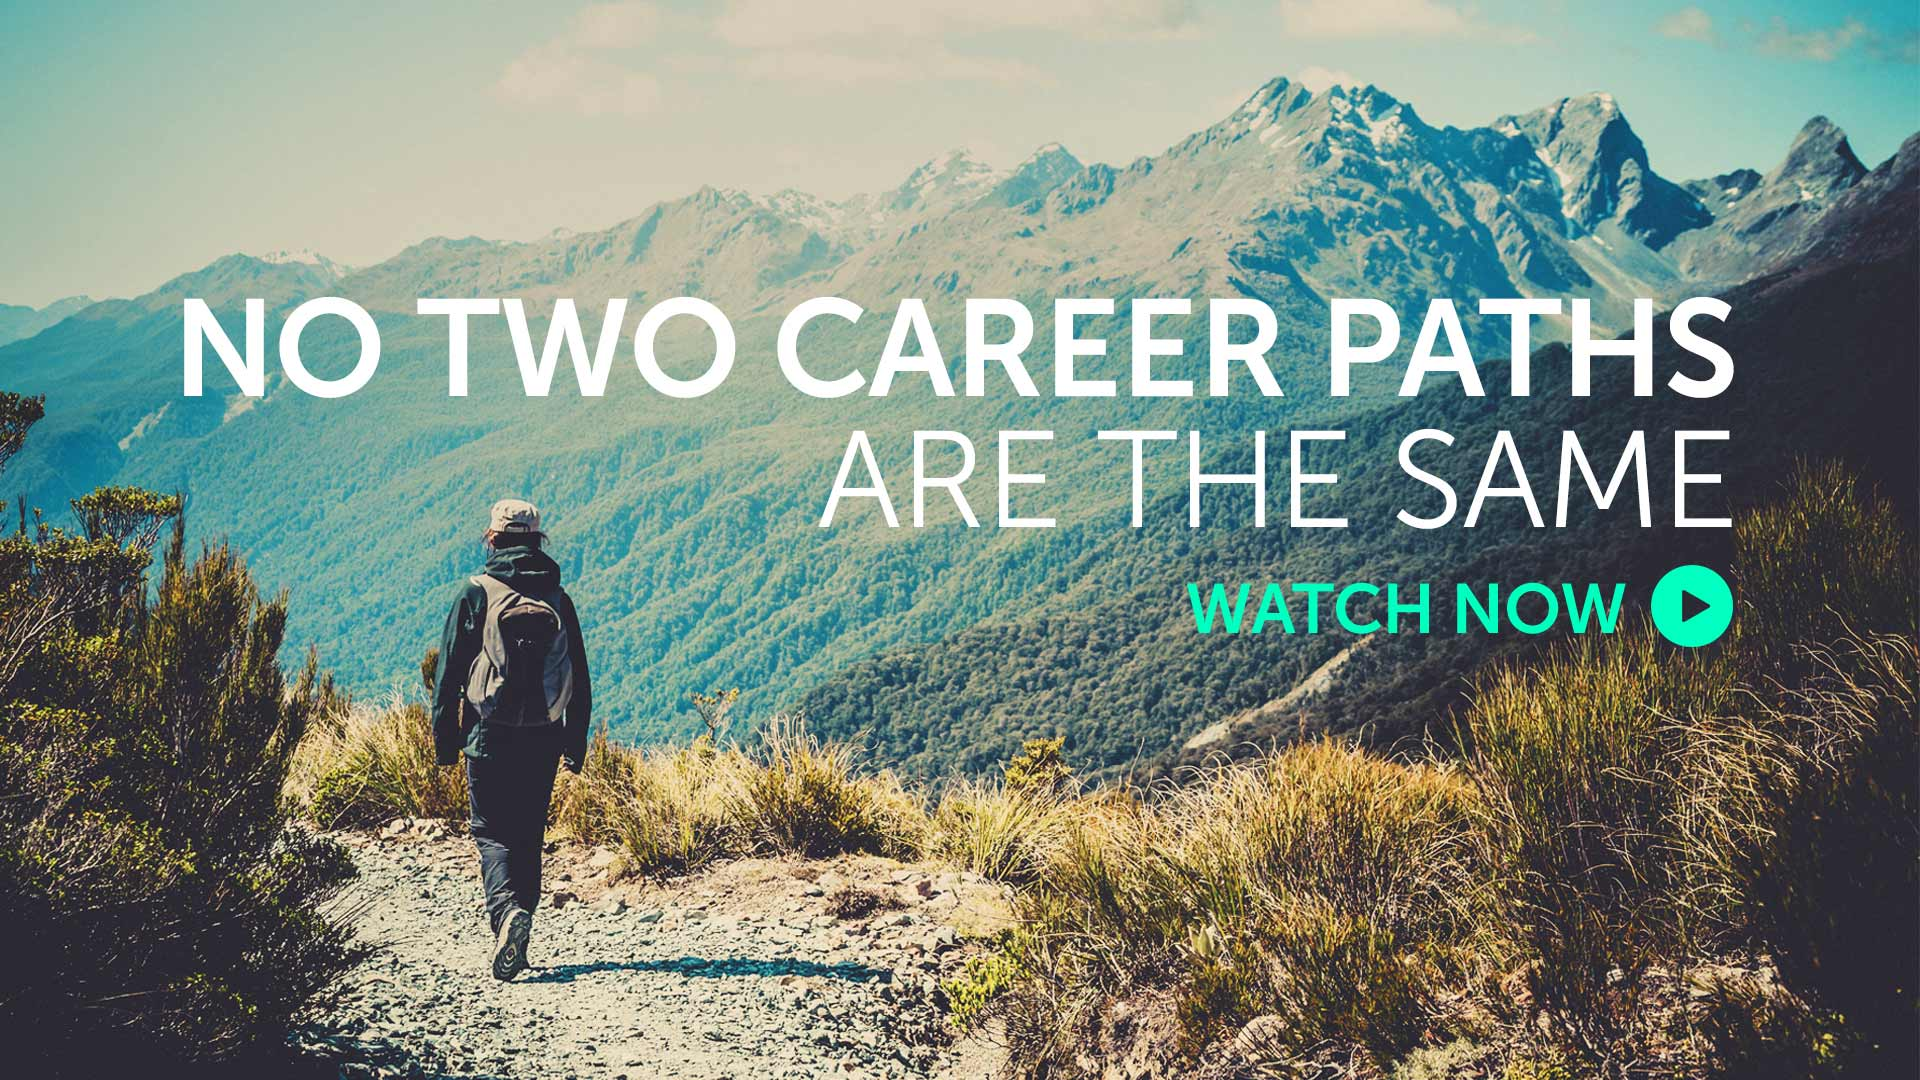 Briefing: No two career paths are the same